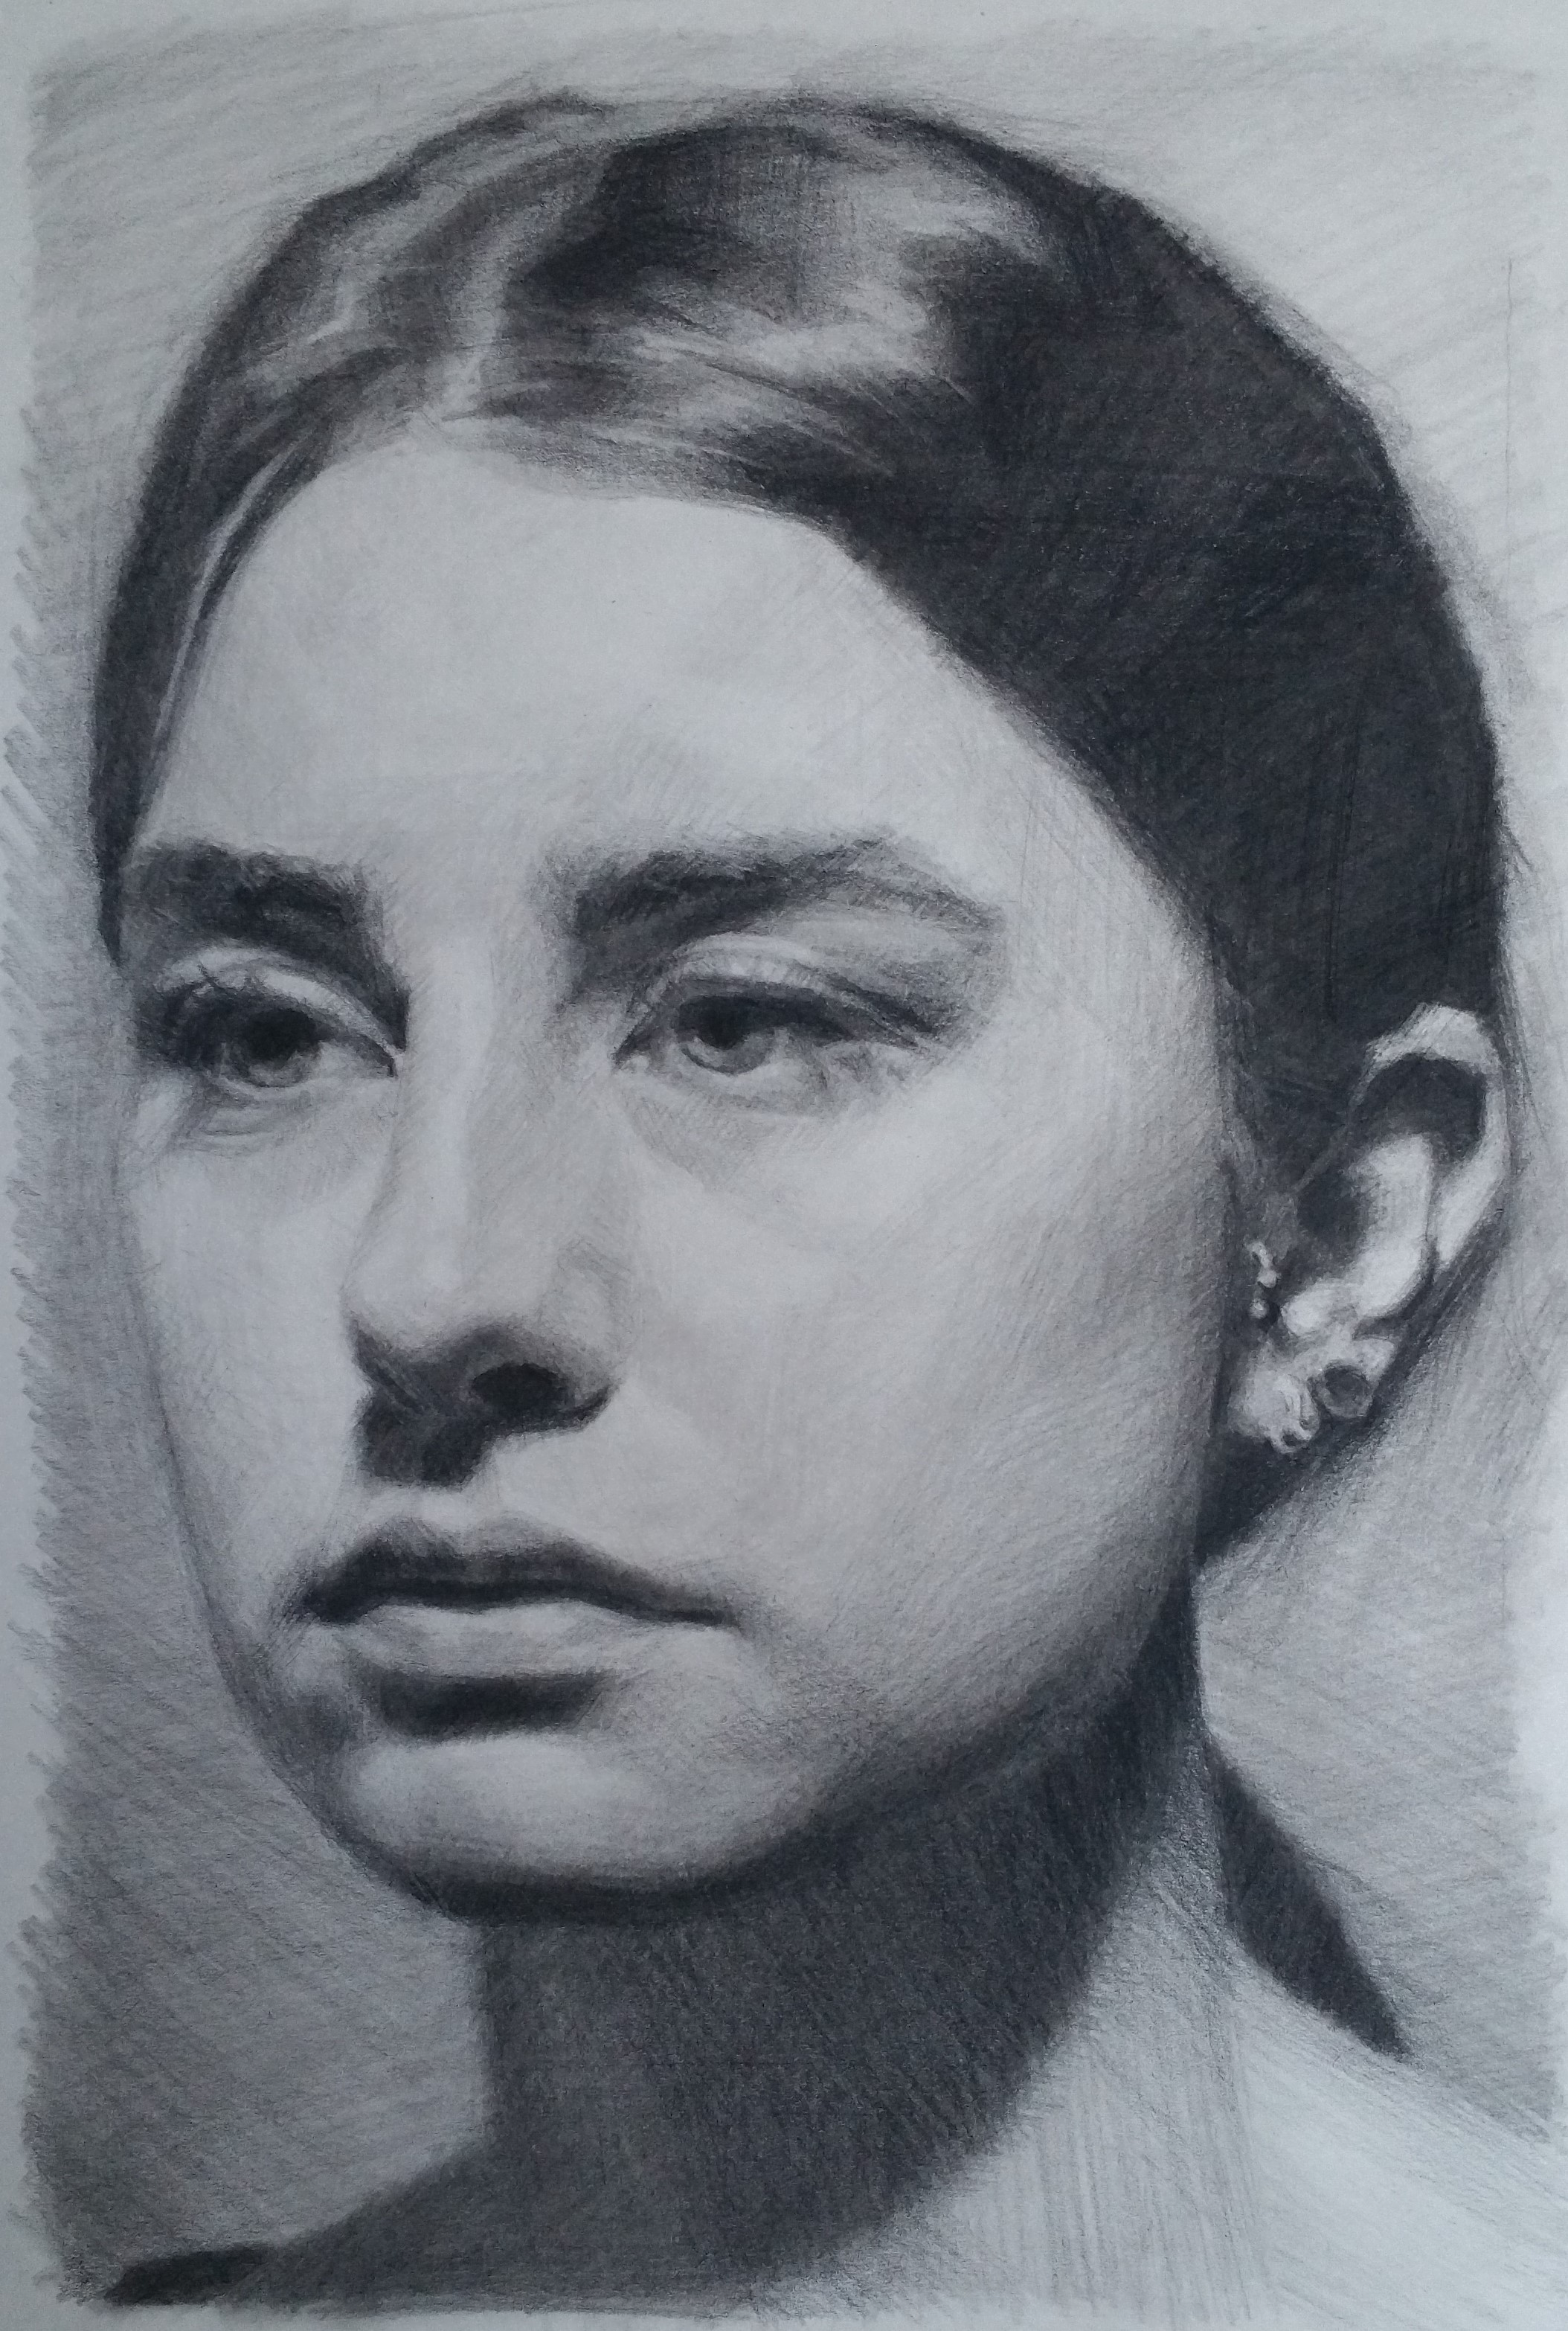 Woman with earrings, charcoal on newsprint, 20x30cm, SOLD